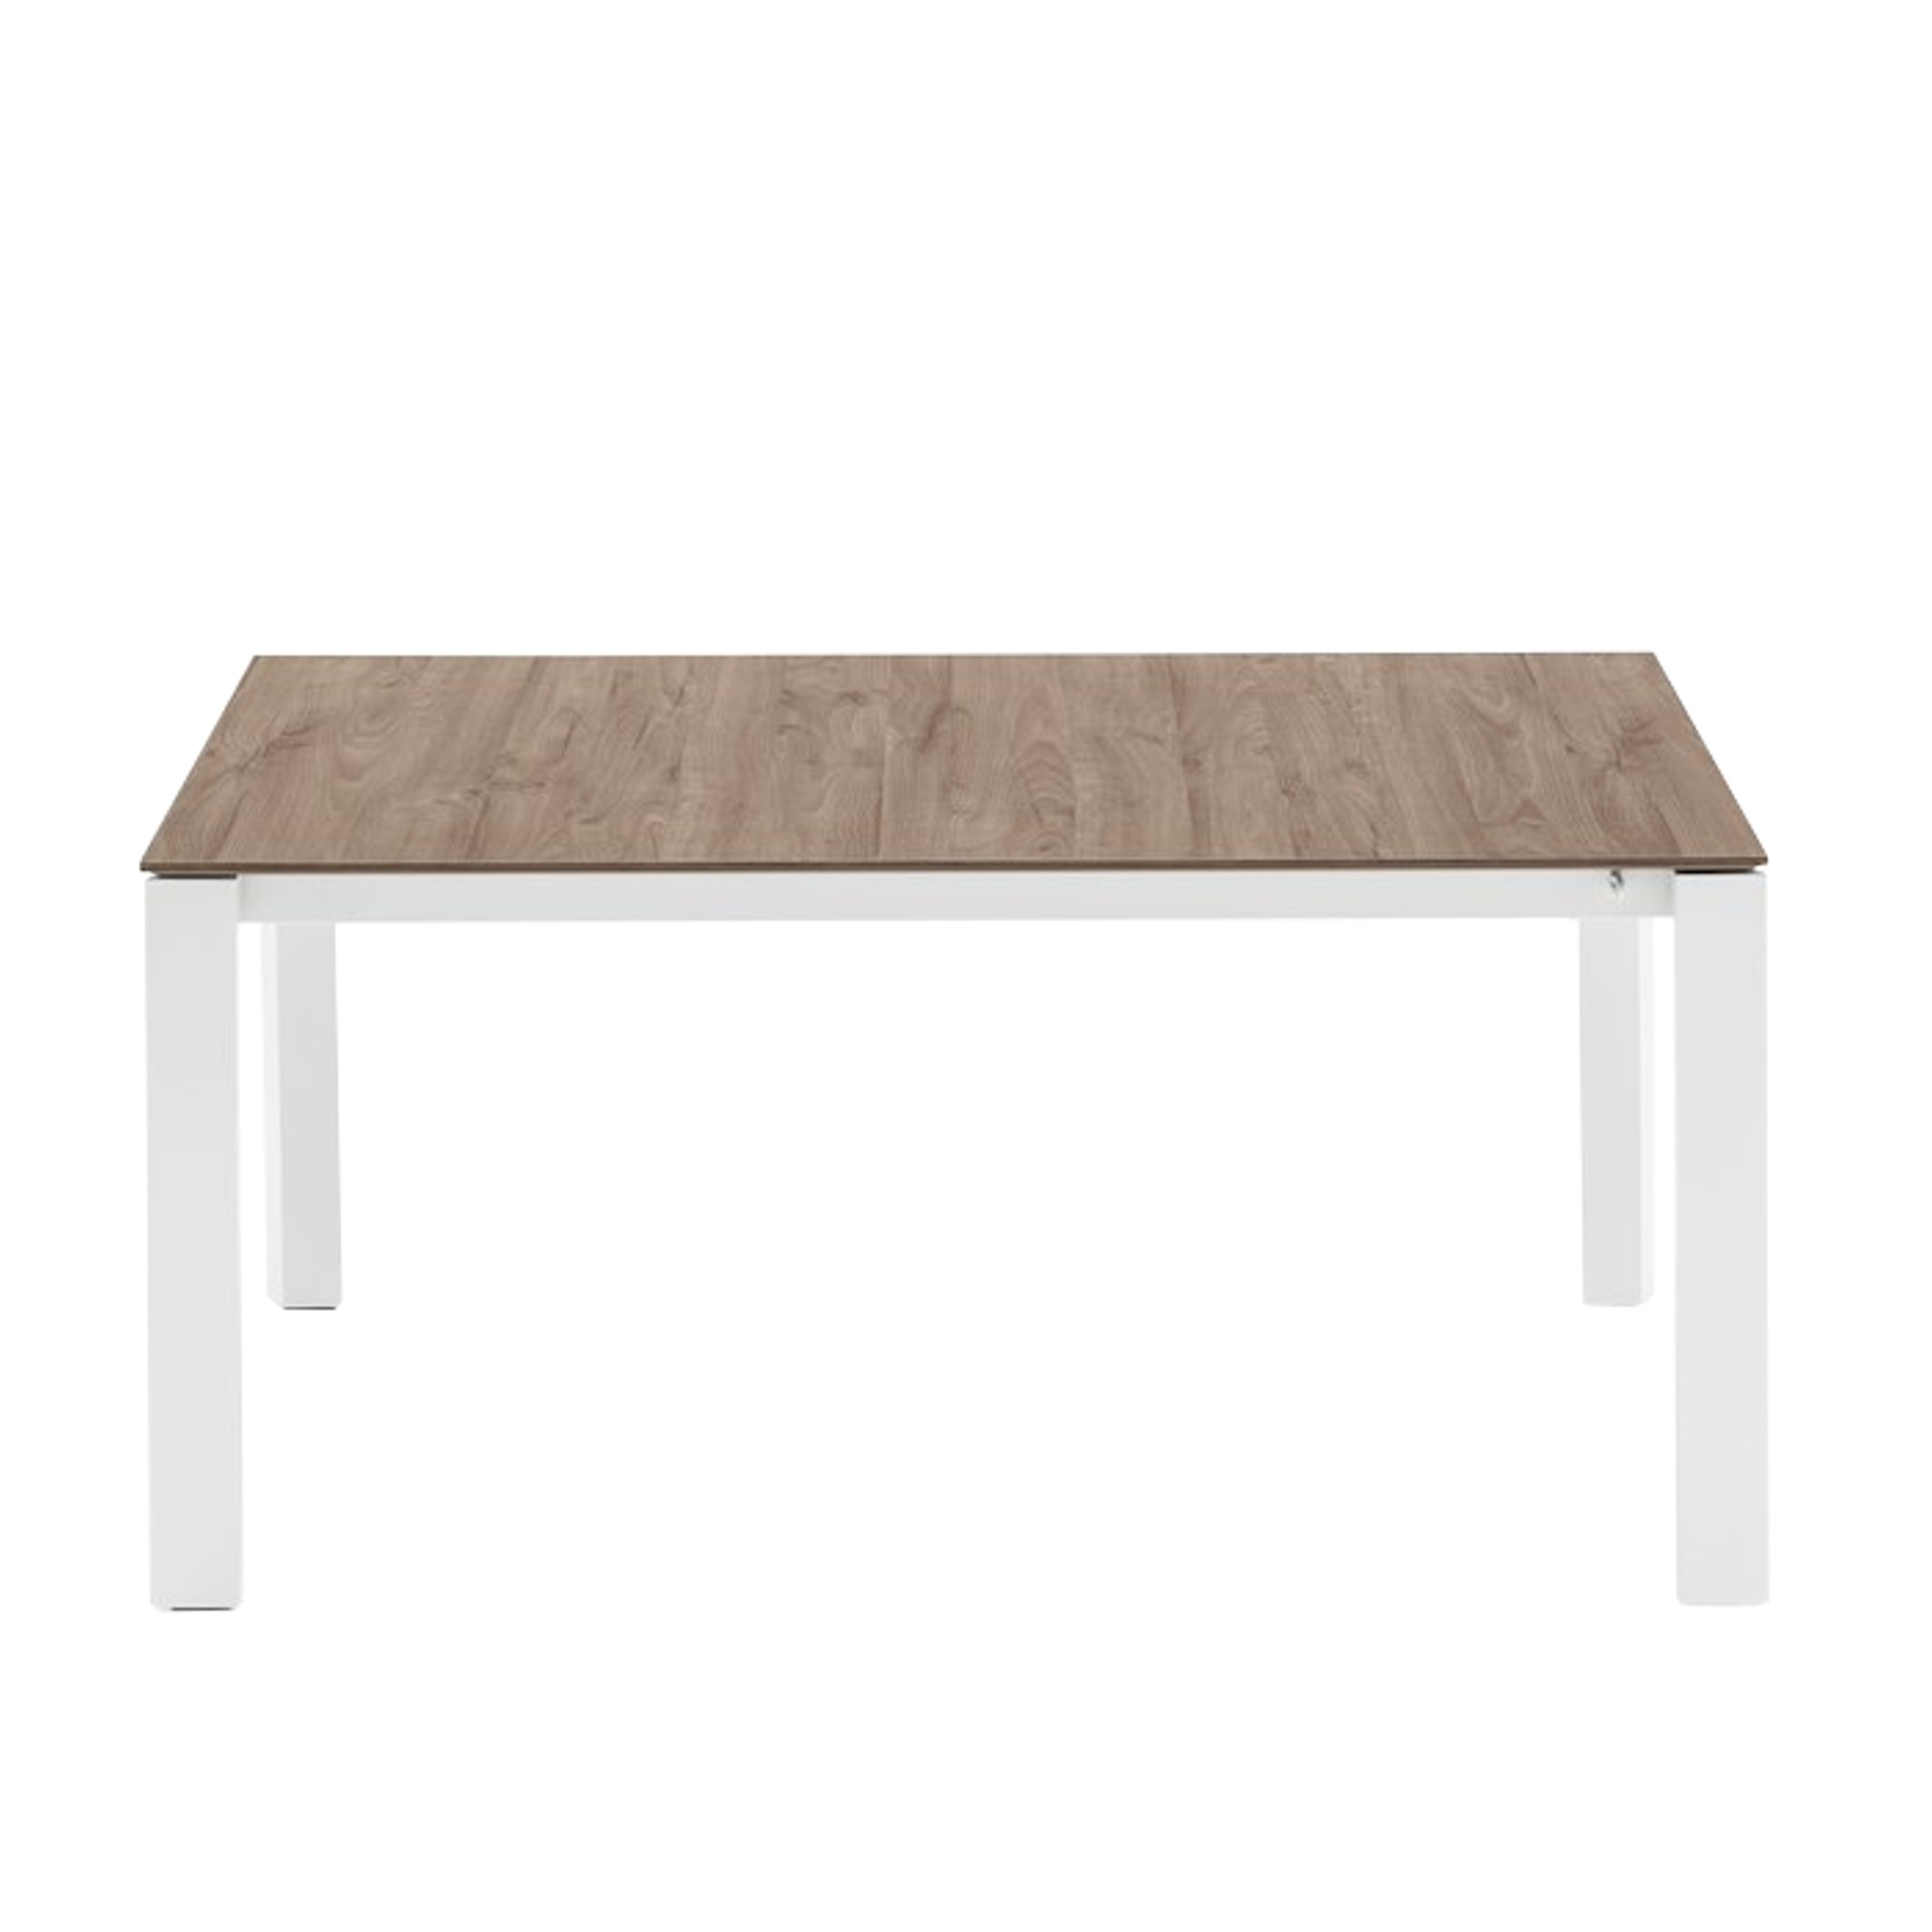 Eminence Eminence Fast Extensible Fast Table Extensible Table OwiuXTPklZ